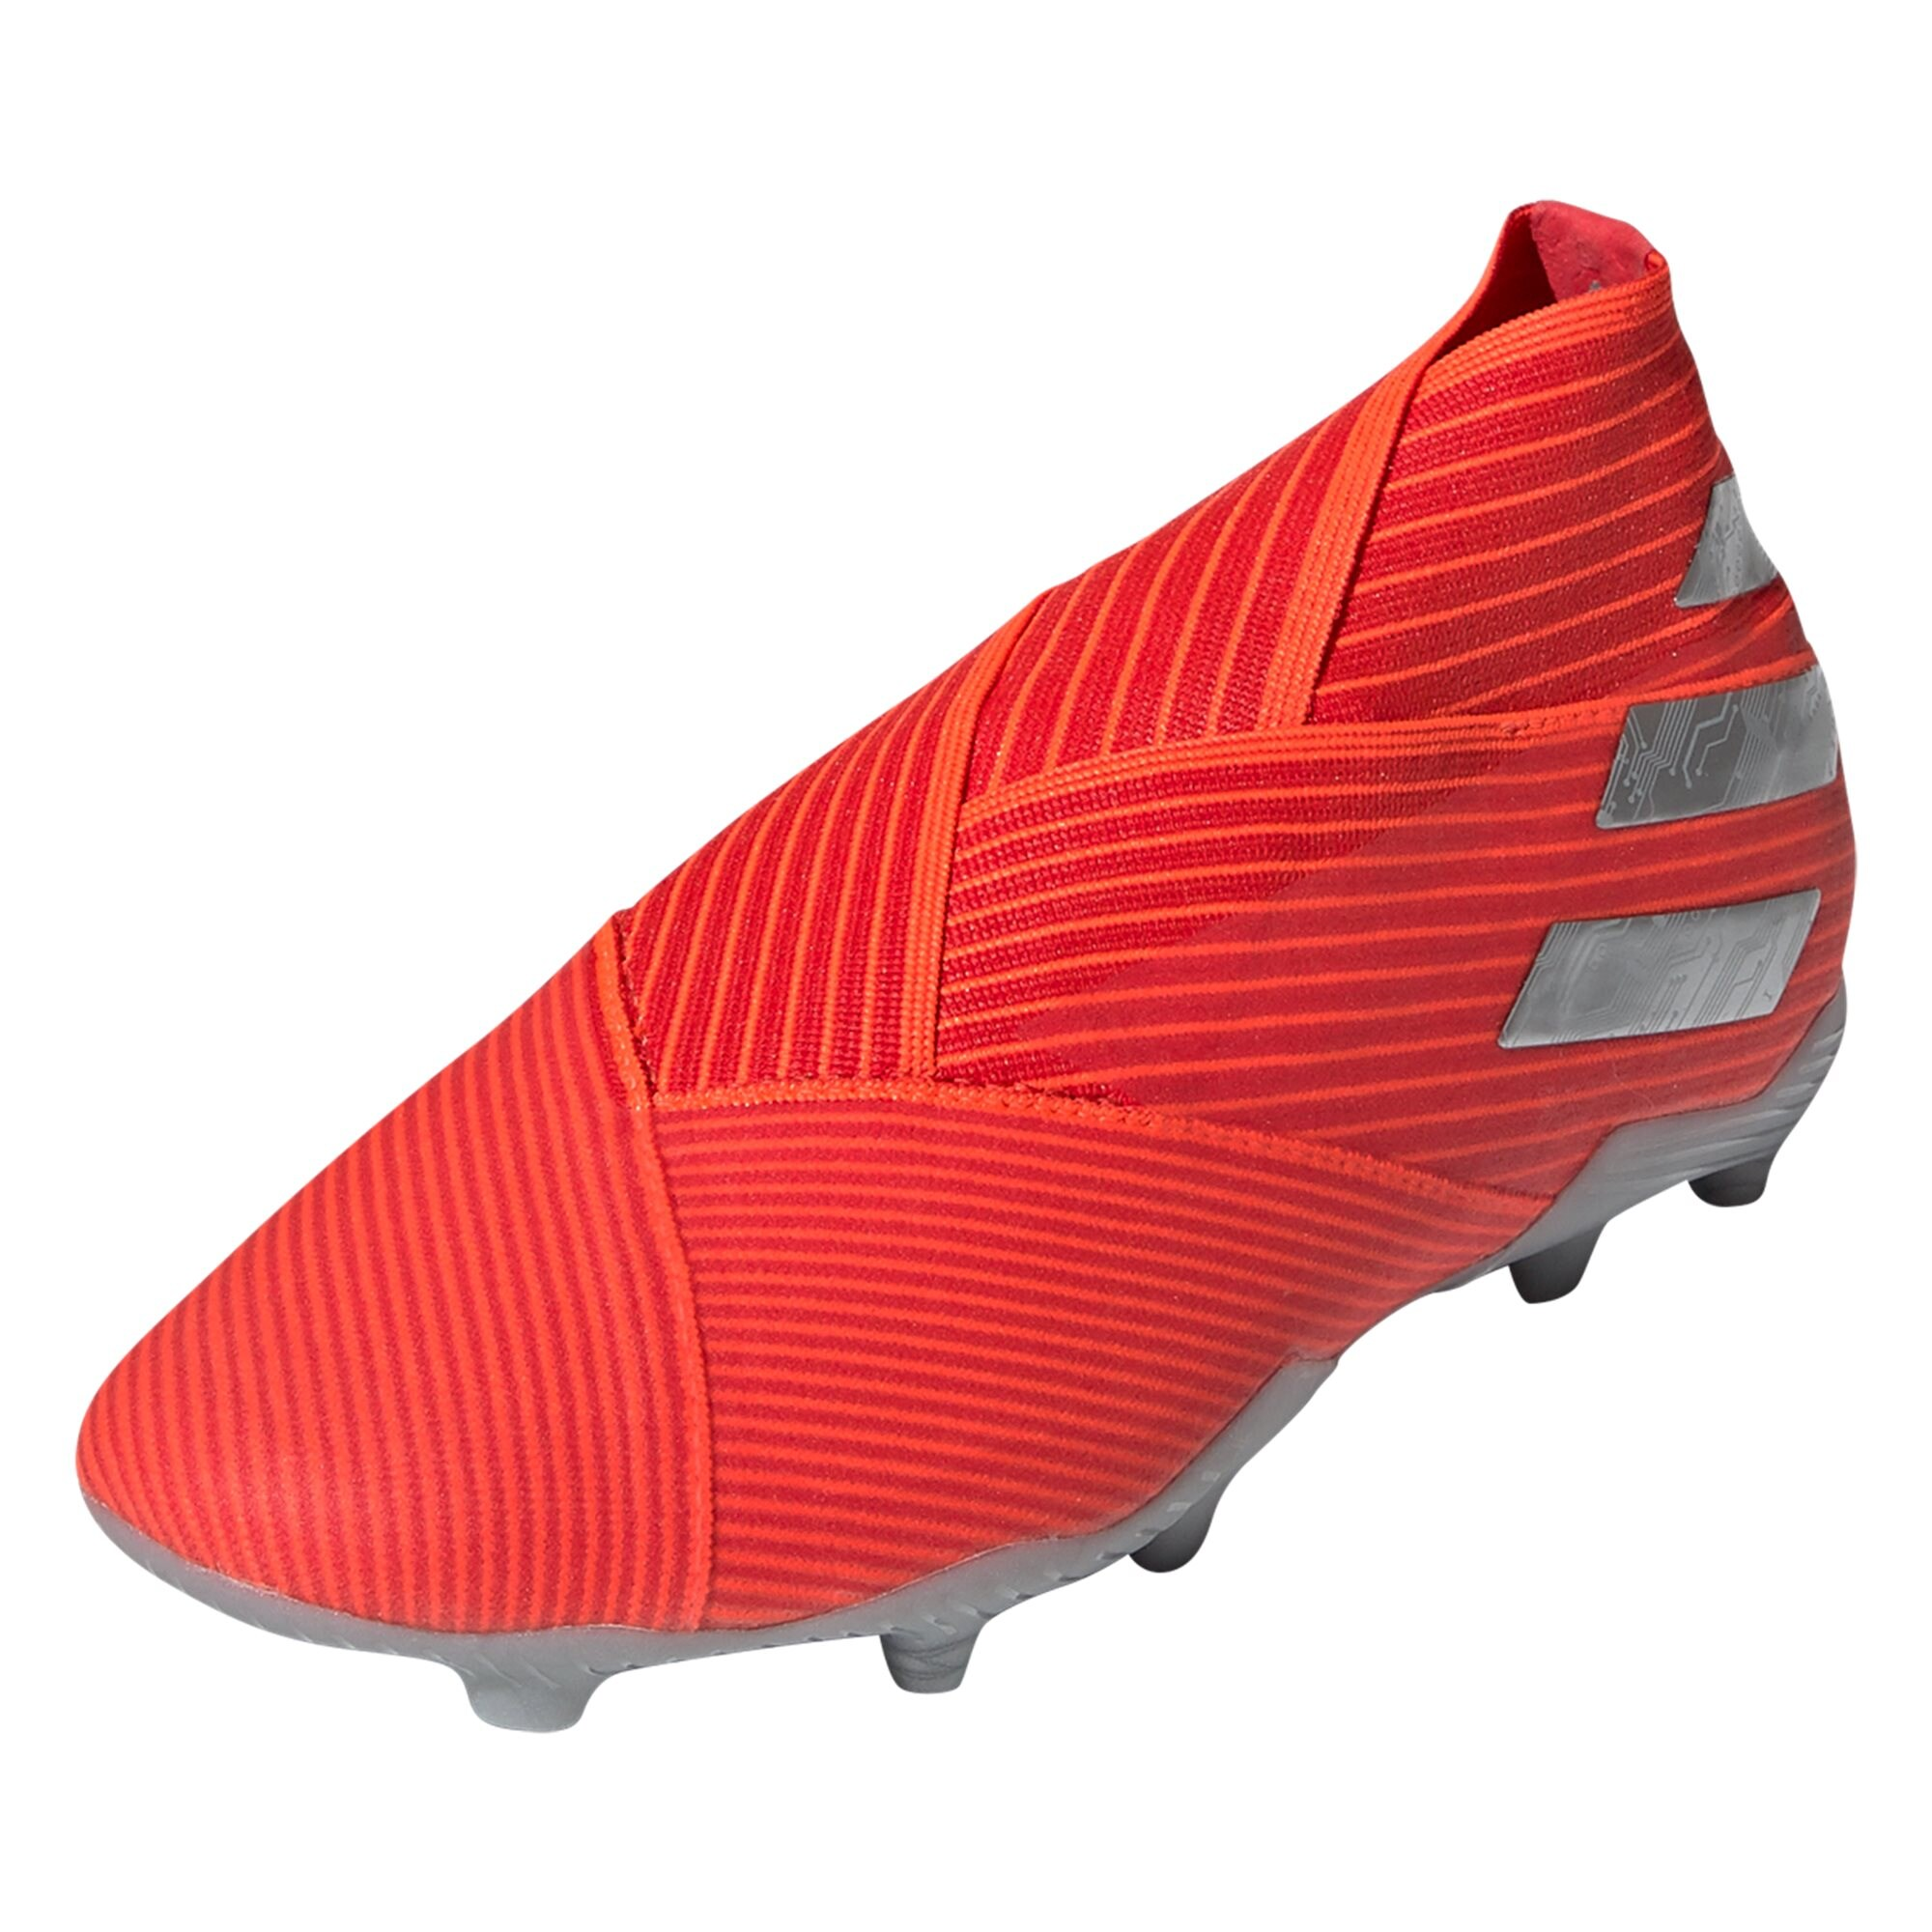 adidas Nemeziz 19+ Junior FG Soccer Cleat - Active Red / Metallic Silver / Solar Red